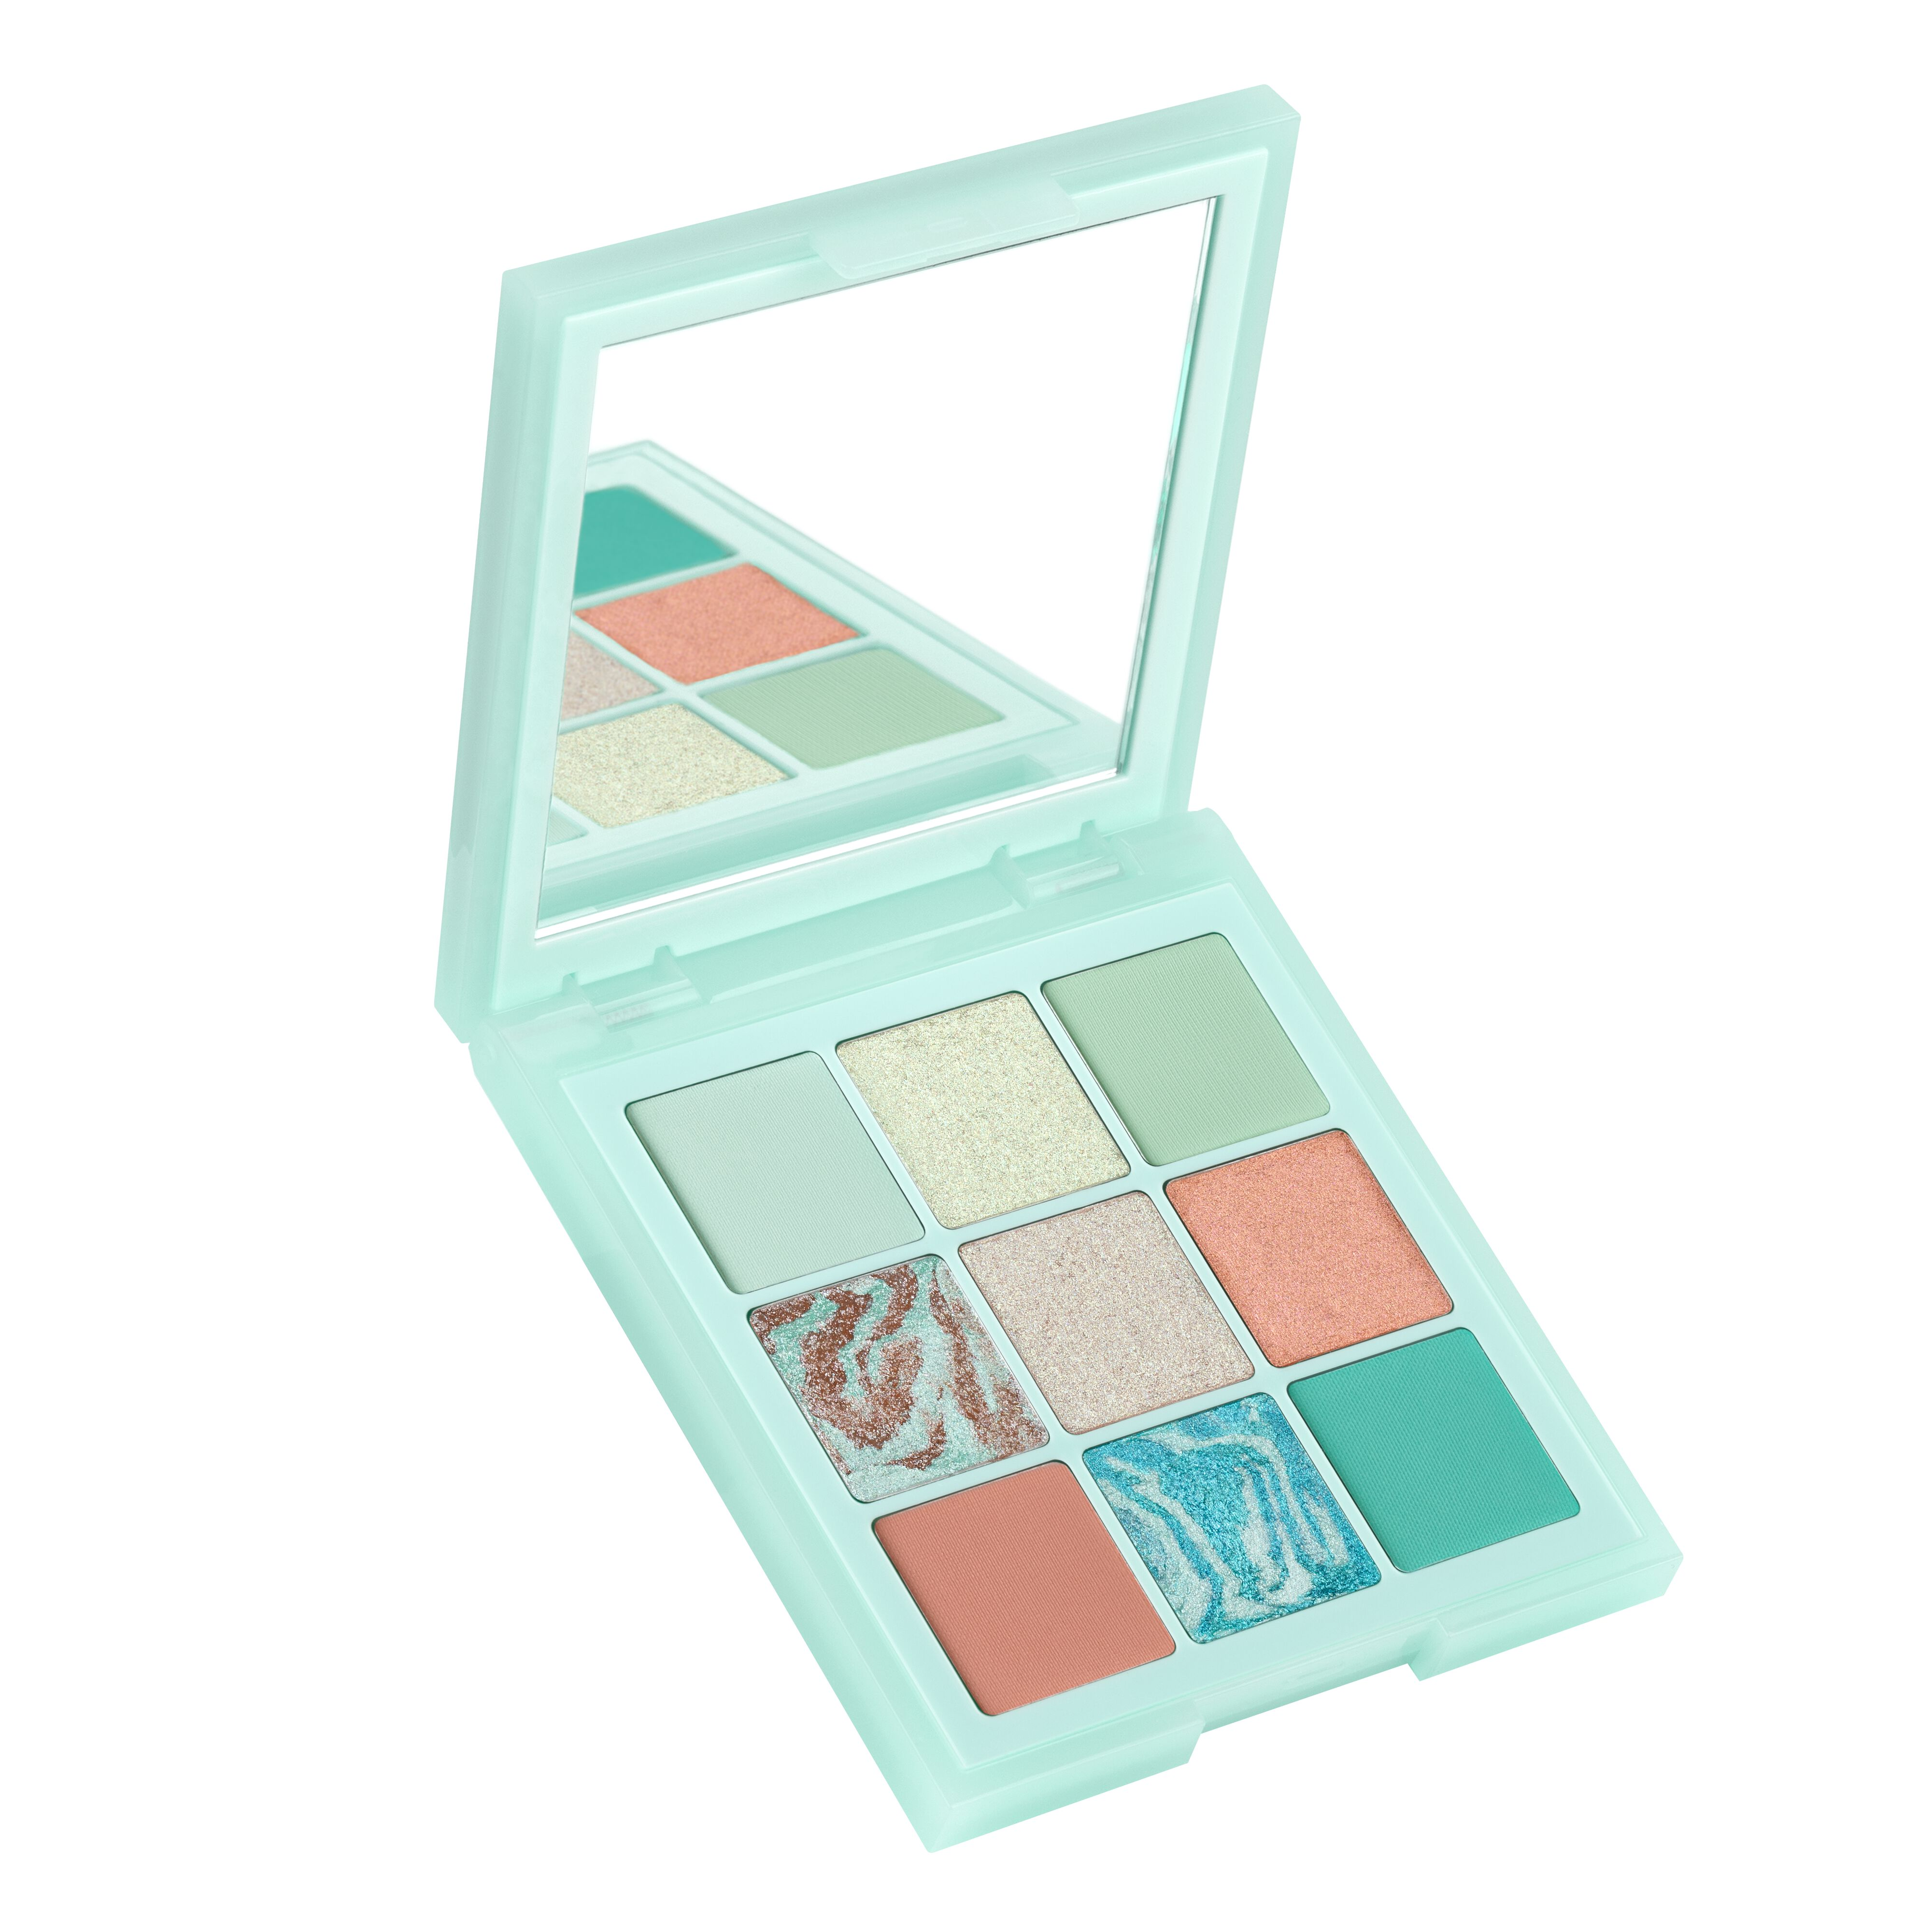 Huda Beauty PASTEL Obsessions Eyeshadow Palette in Mint - Shop Now